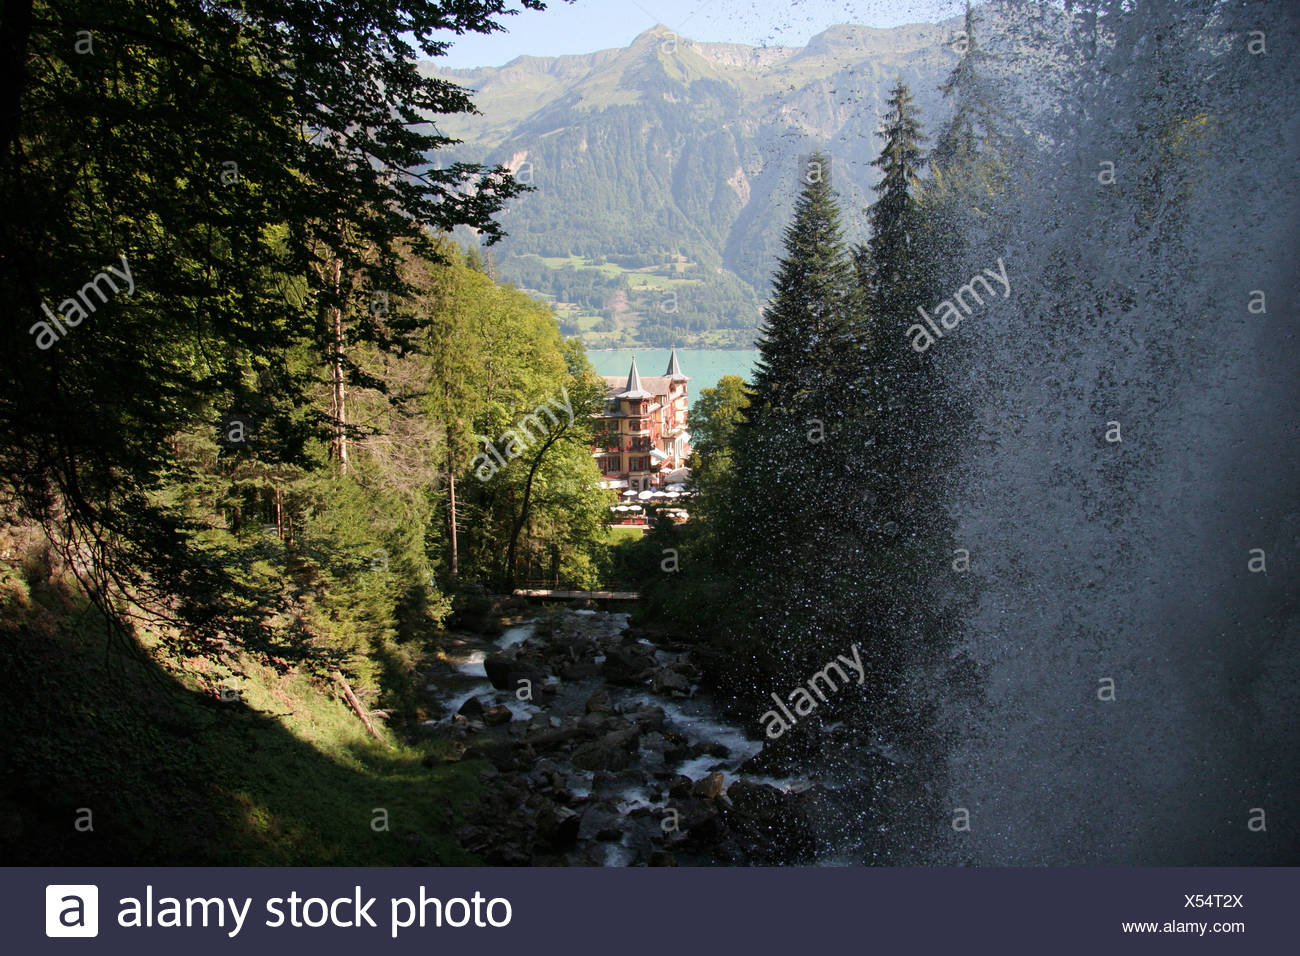 Switzerland Europe Brienz Giessbach falls Bernese Oberland Canton Berne Bern Giessbachfalle Waterfall landsca Stock Photo